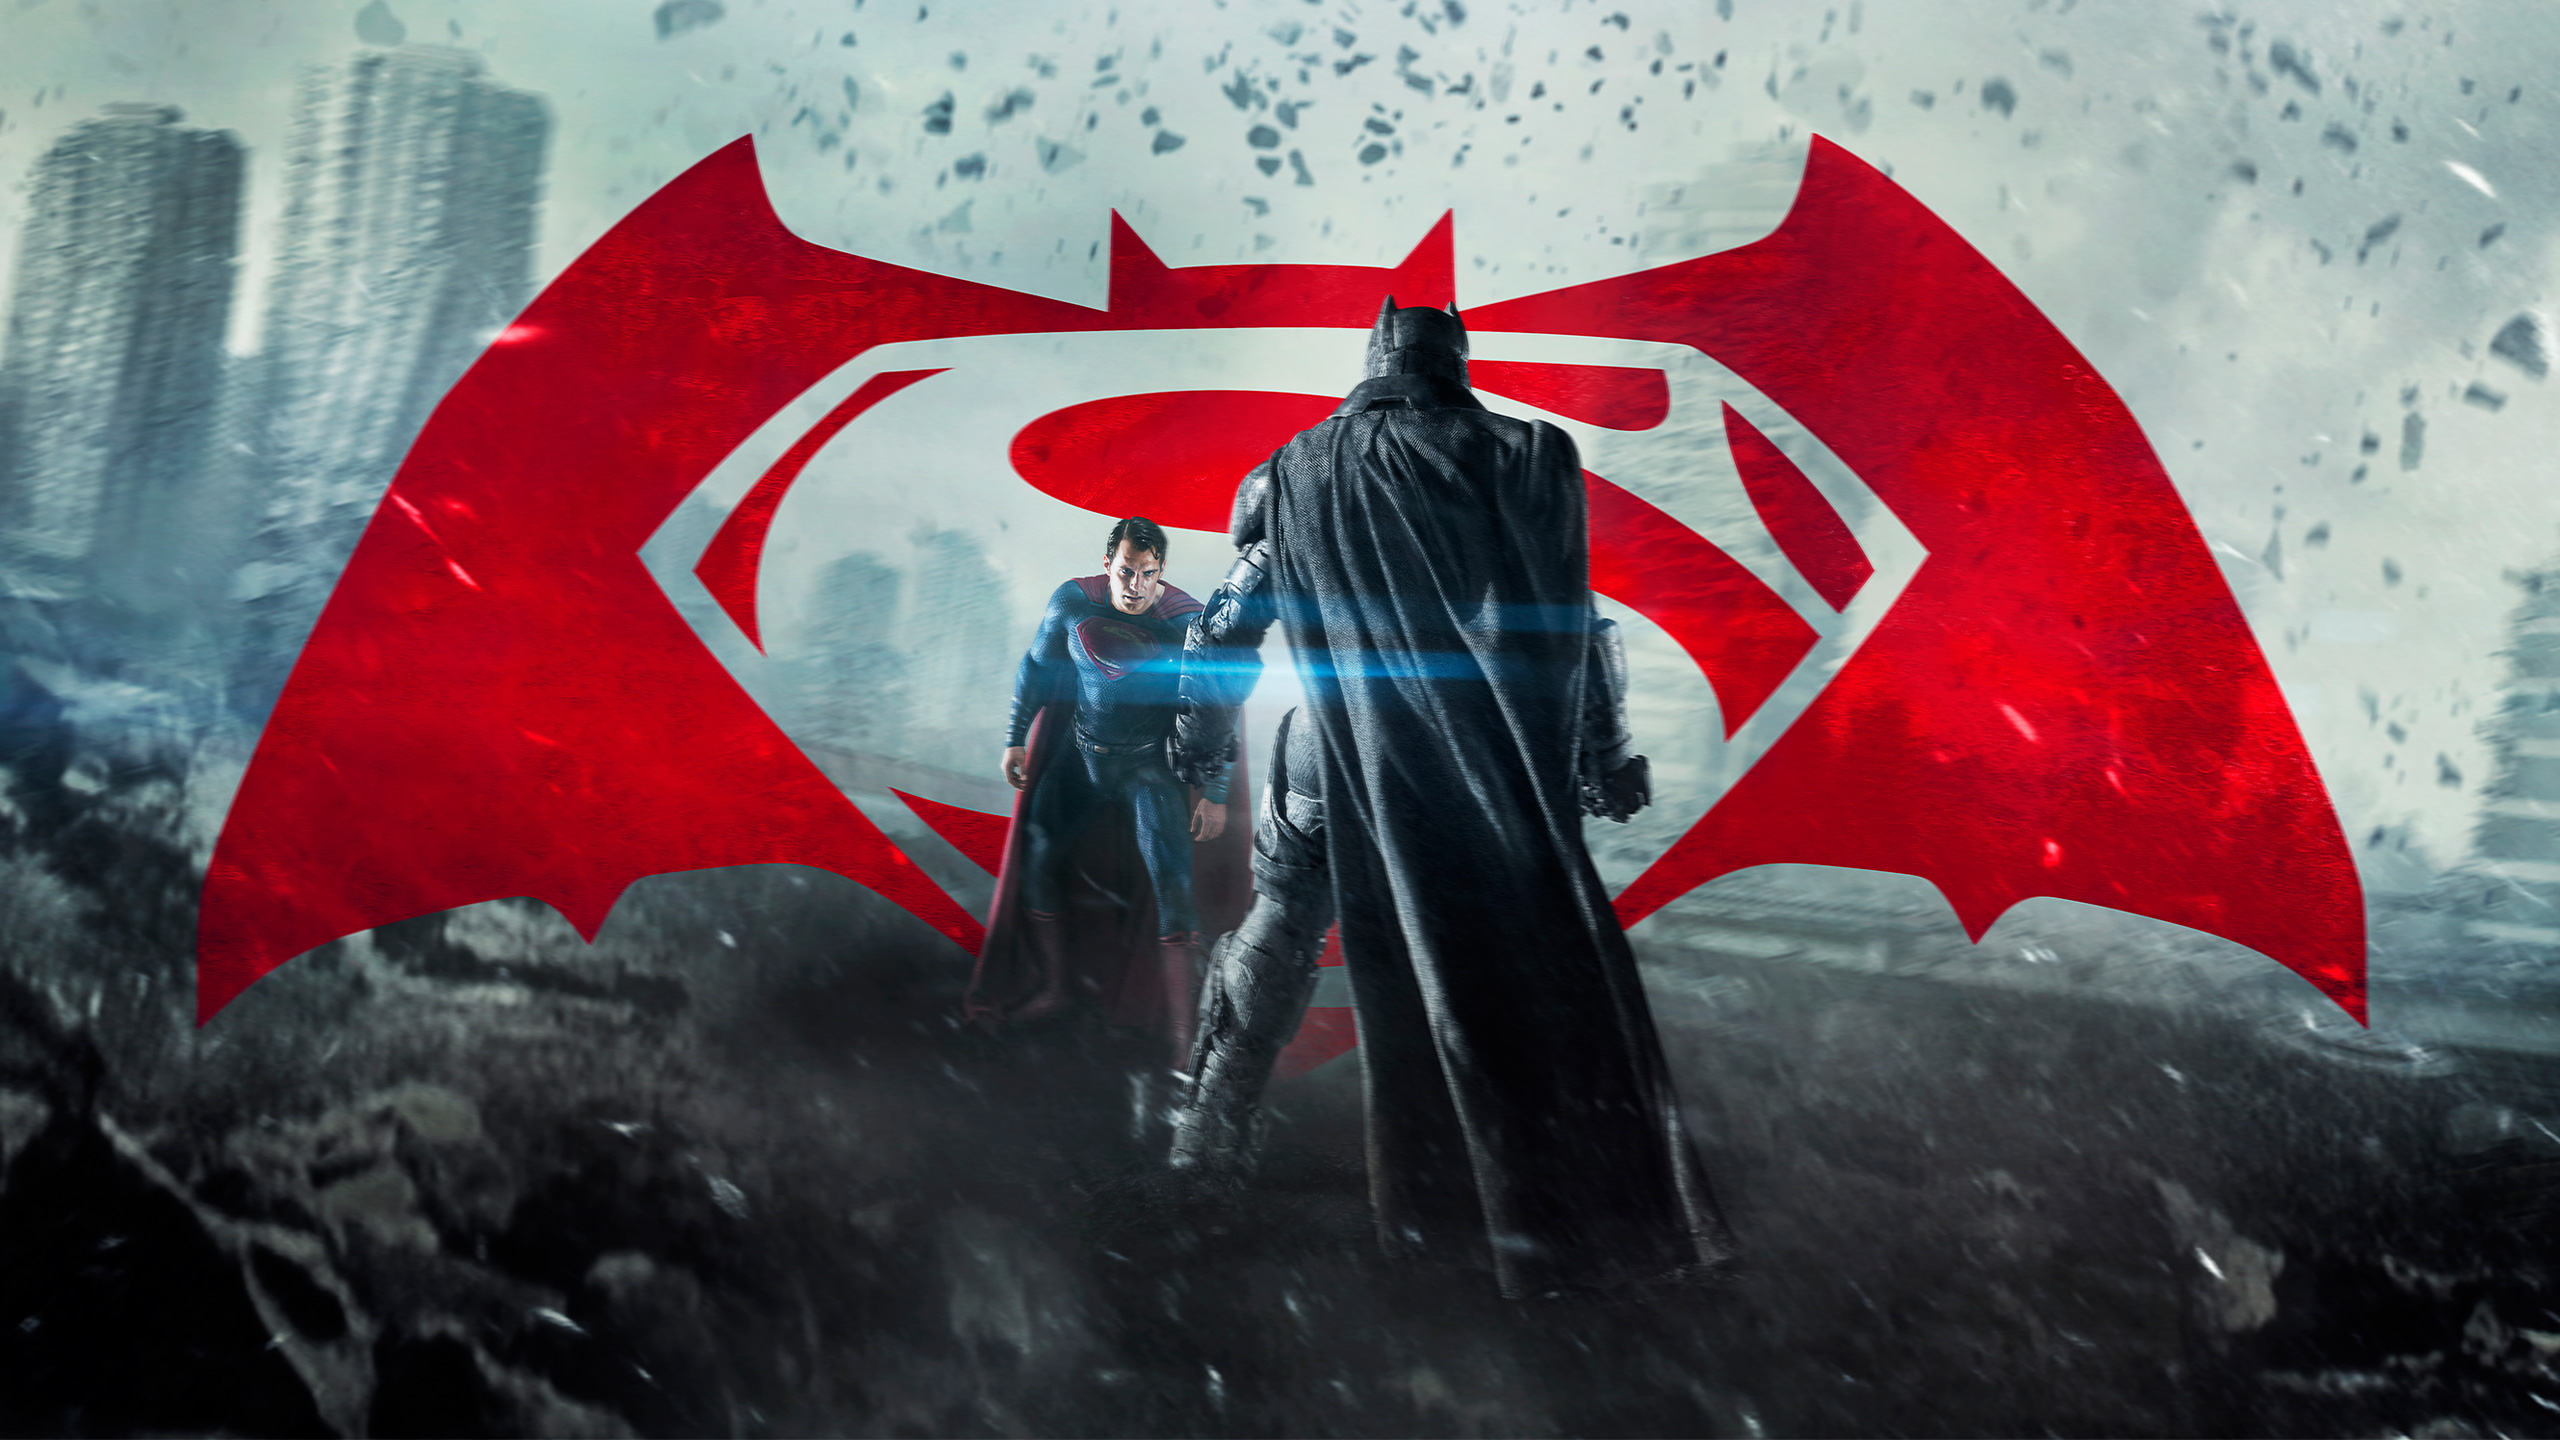 Batman Vs Superman Wallpapers  Wallpaper  2560x1440